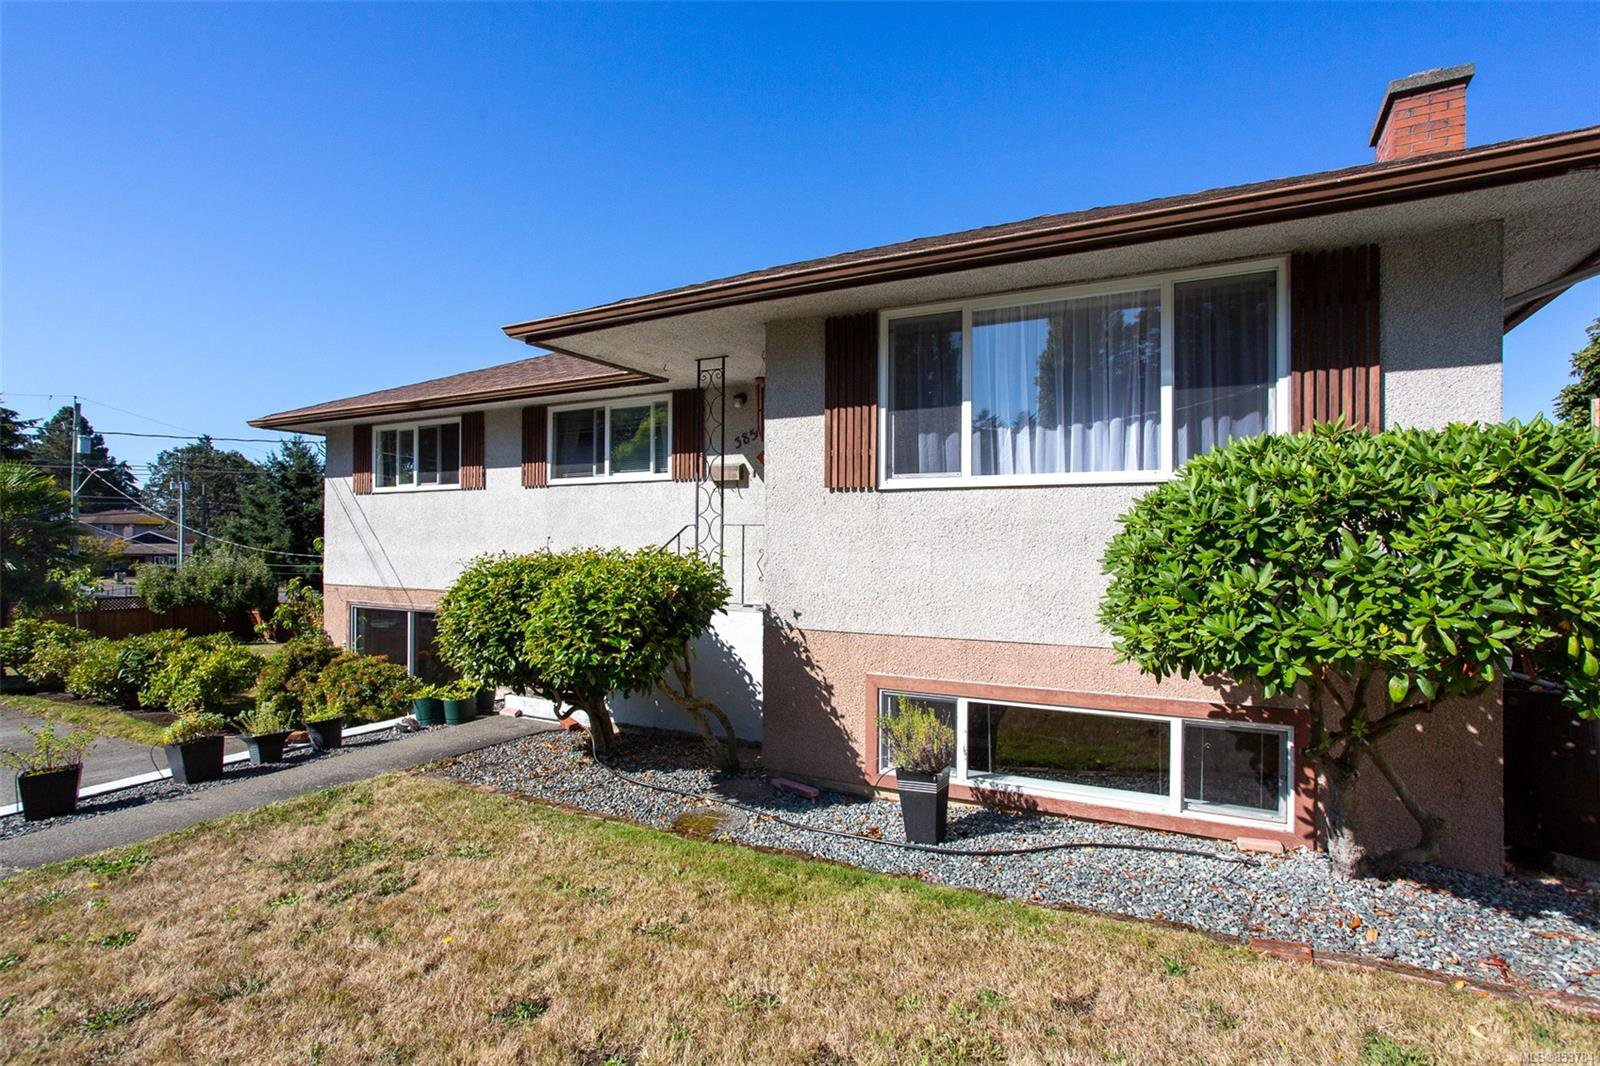 Main Photo: 3851 Merriman Dr in : SE Cedar Hill House for sale (Saanich East)  : MLS®# 853784